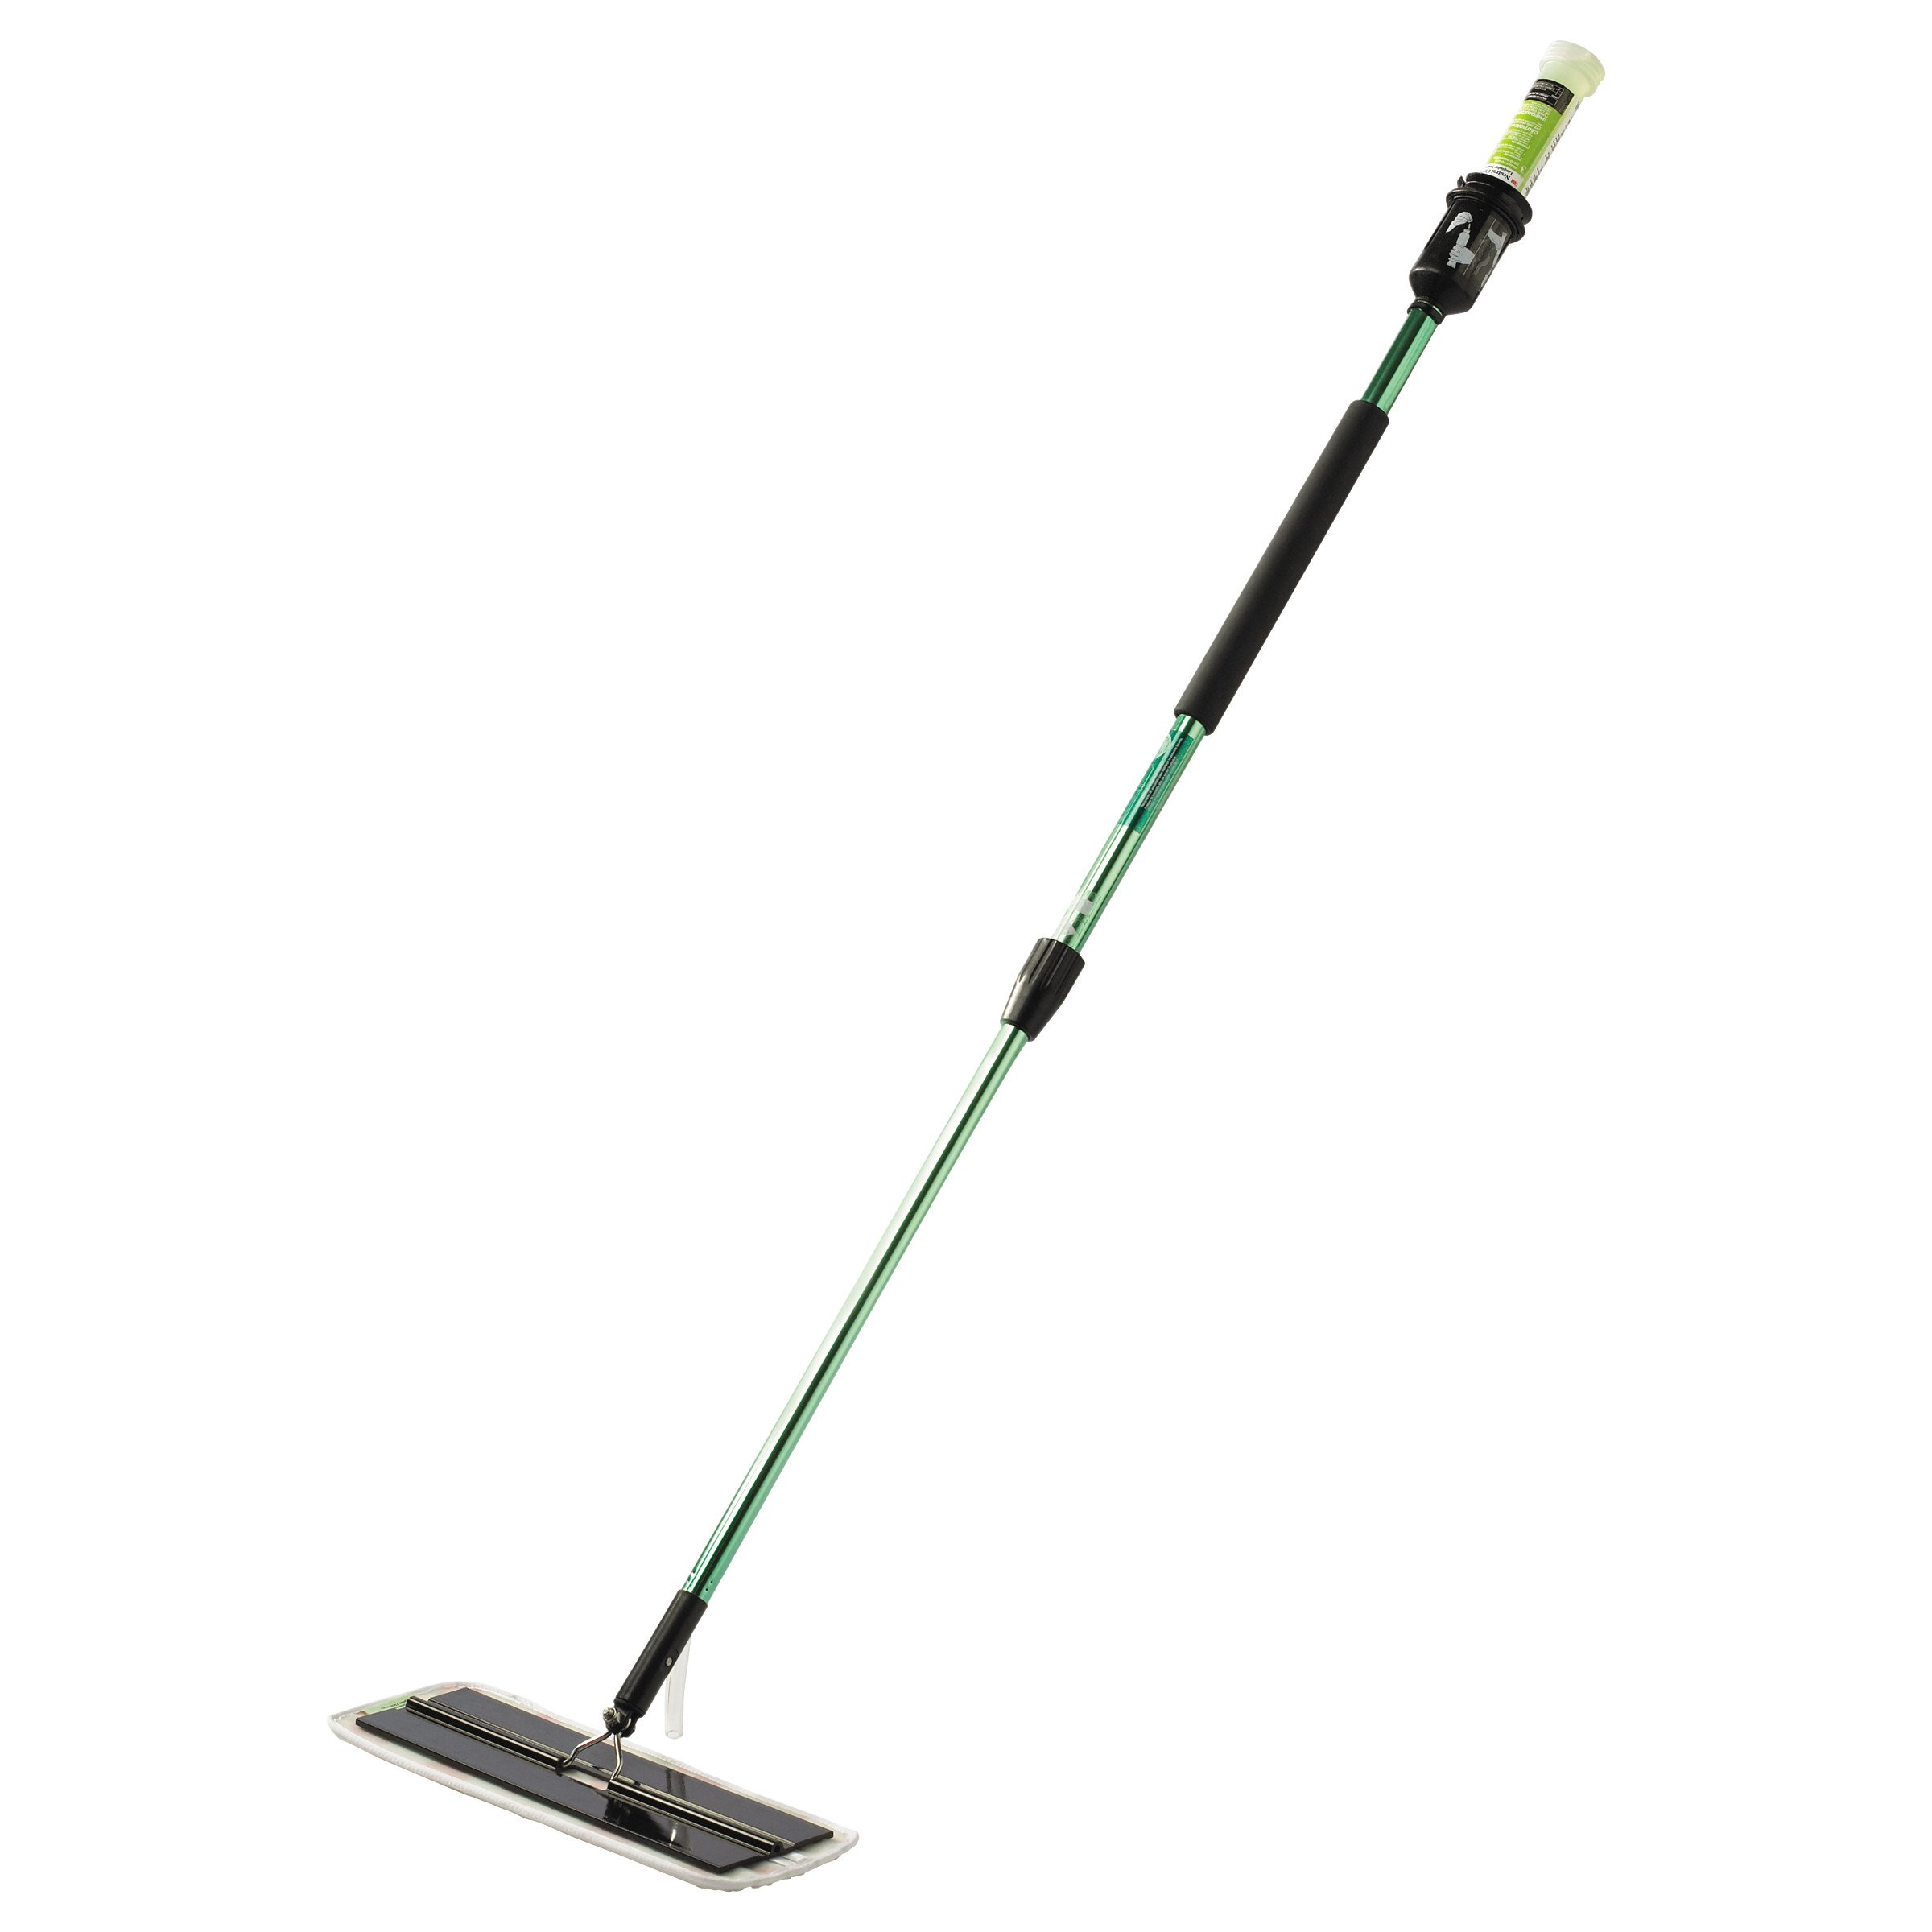 3M 59051 Easy Scrub Express Flat Mop Tool with 16'' Pad Holder, High-Gloss Green by 3M